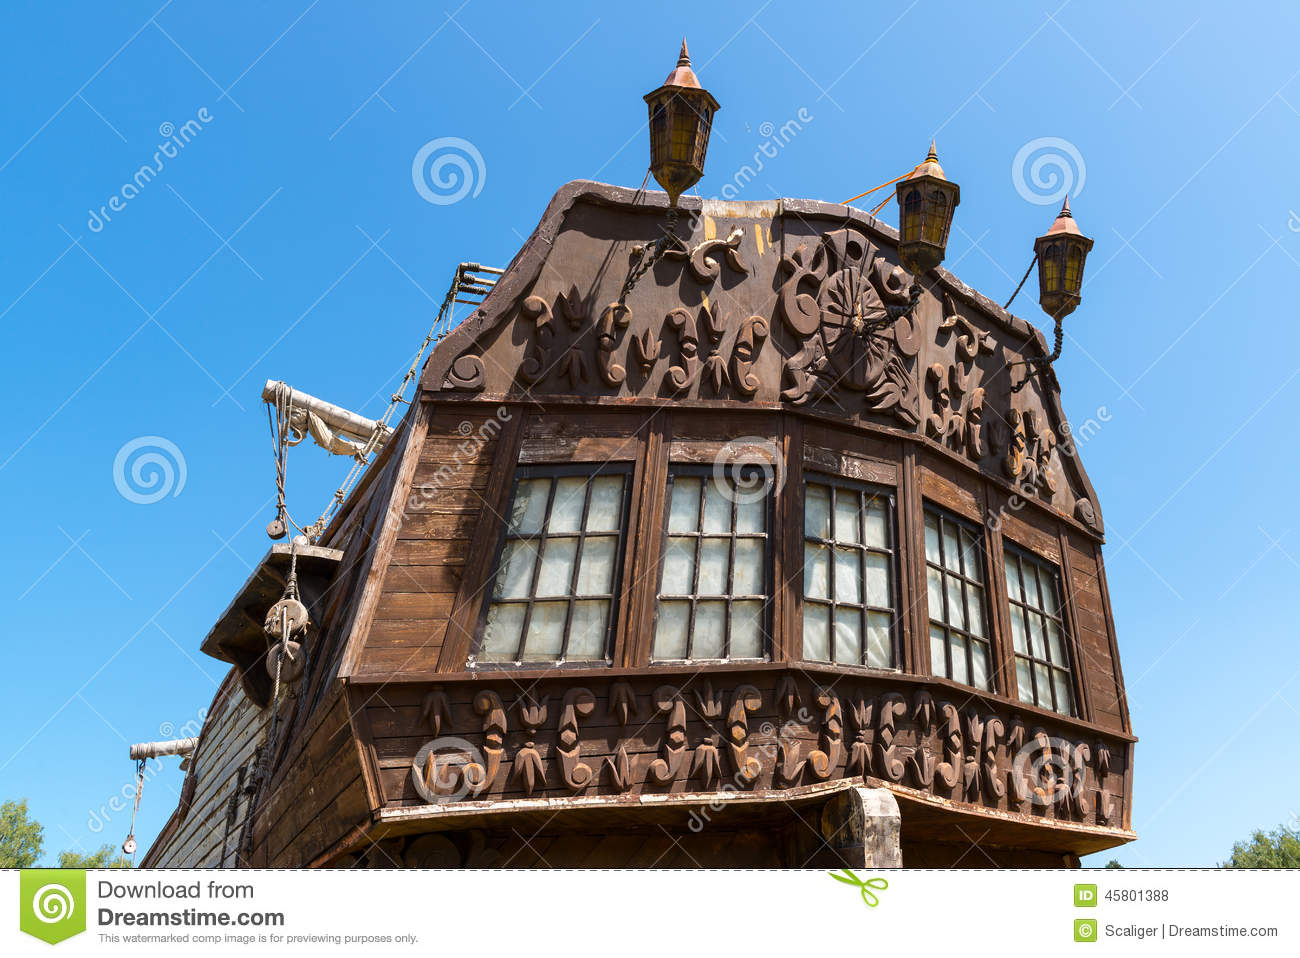 Stern Of The Old Sailing Ship Stock Photo - Image of deck ...